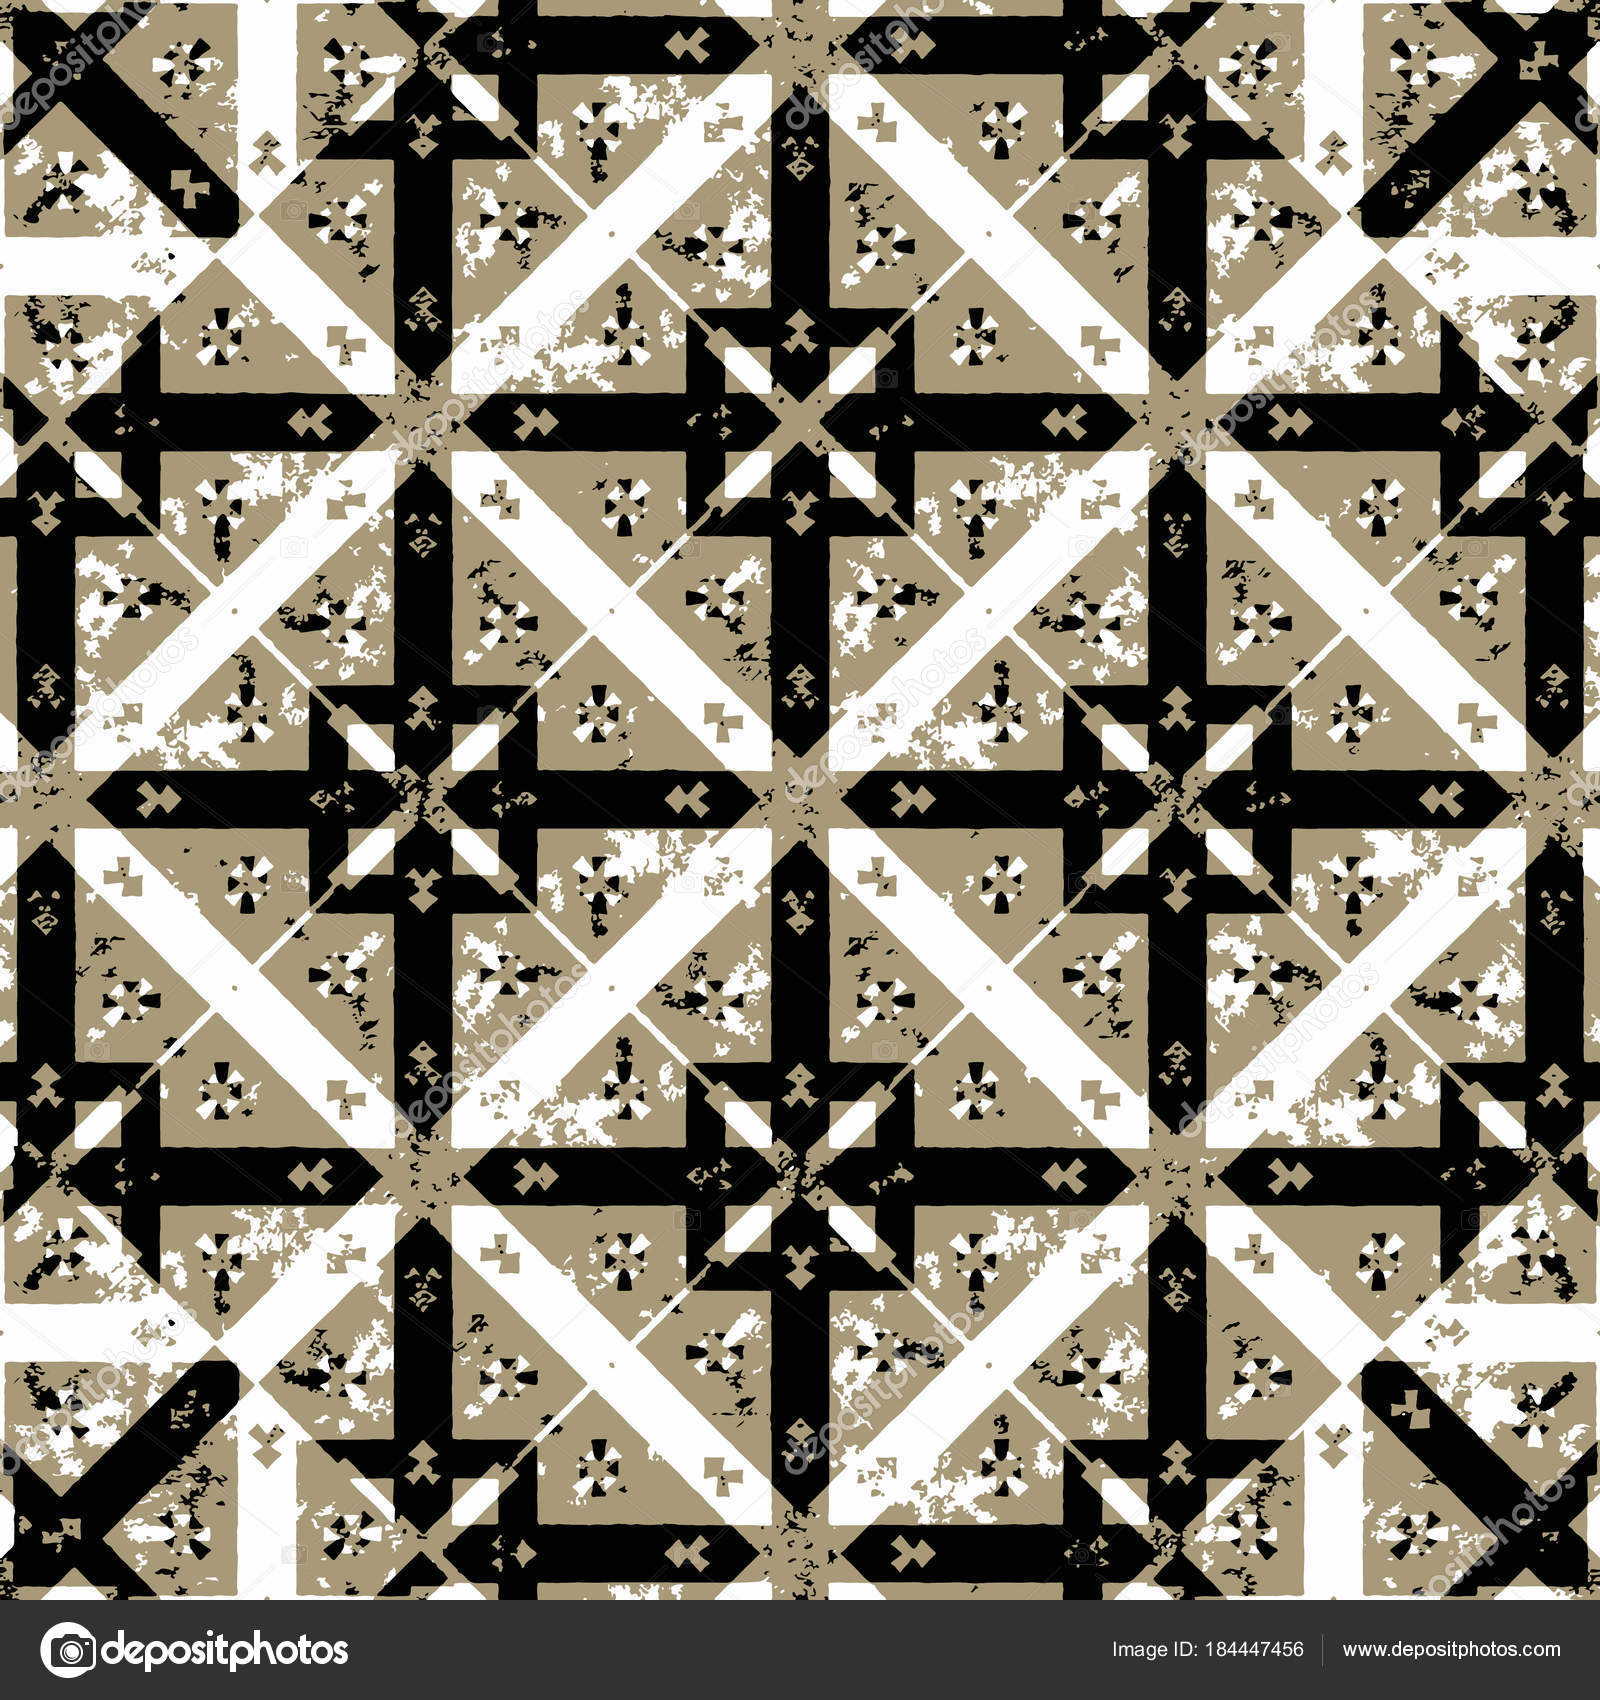 Digital Art Technique Geometric Check Style Medieval Or Gothic Motif Seamless Pattern Design In Brown Againt Black And White Colors